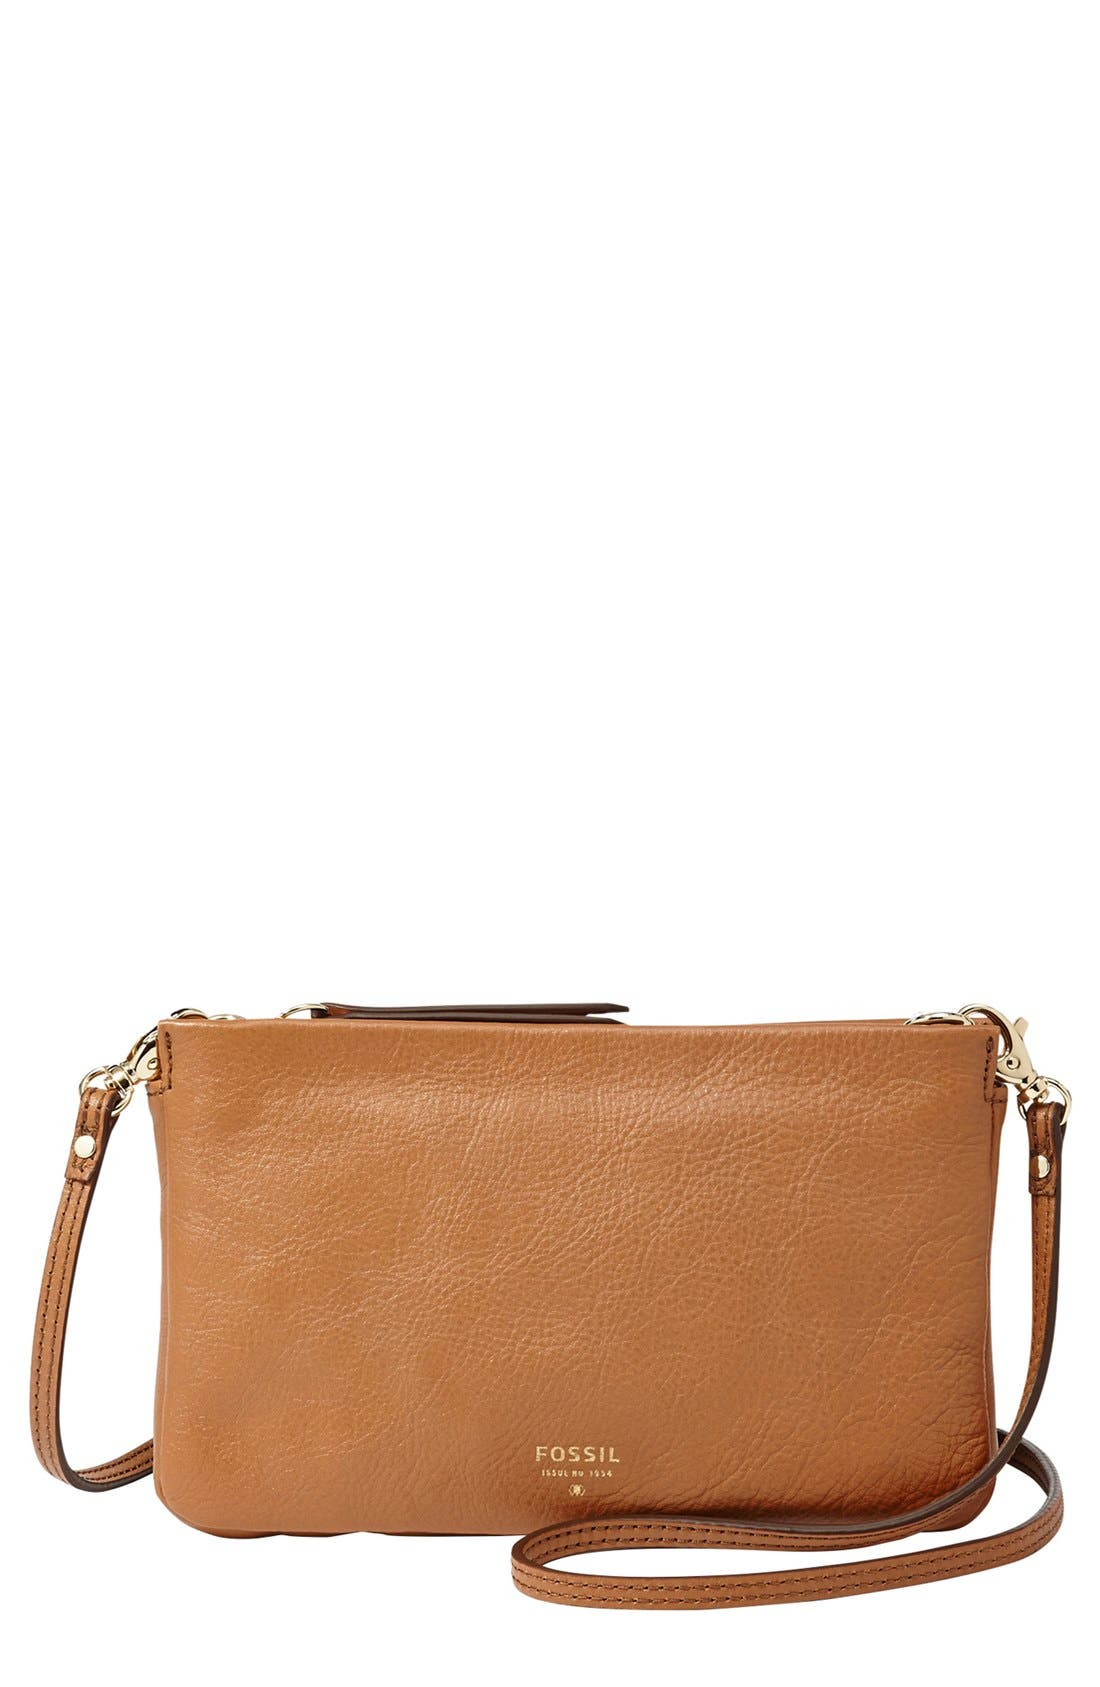 'Mini' Crossbody Bag,                             Main thumbnail 3, color,